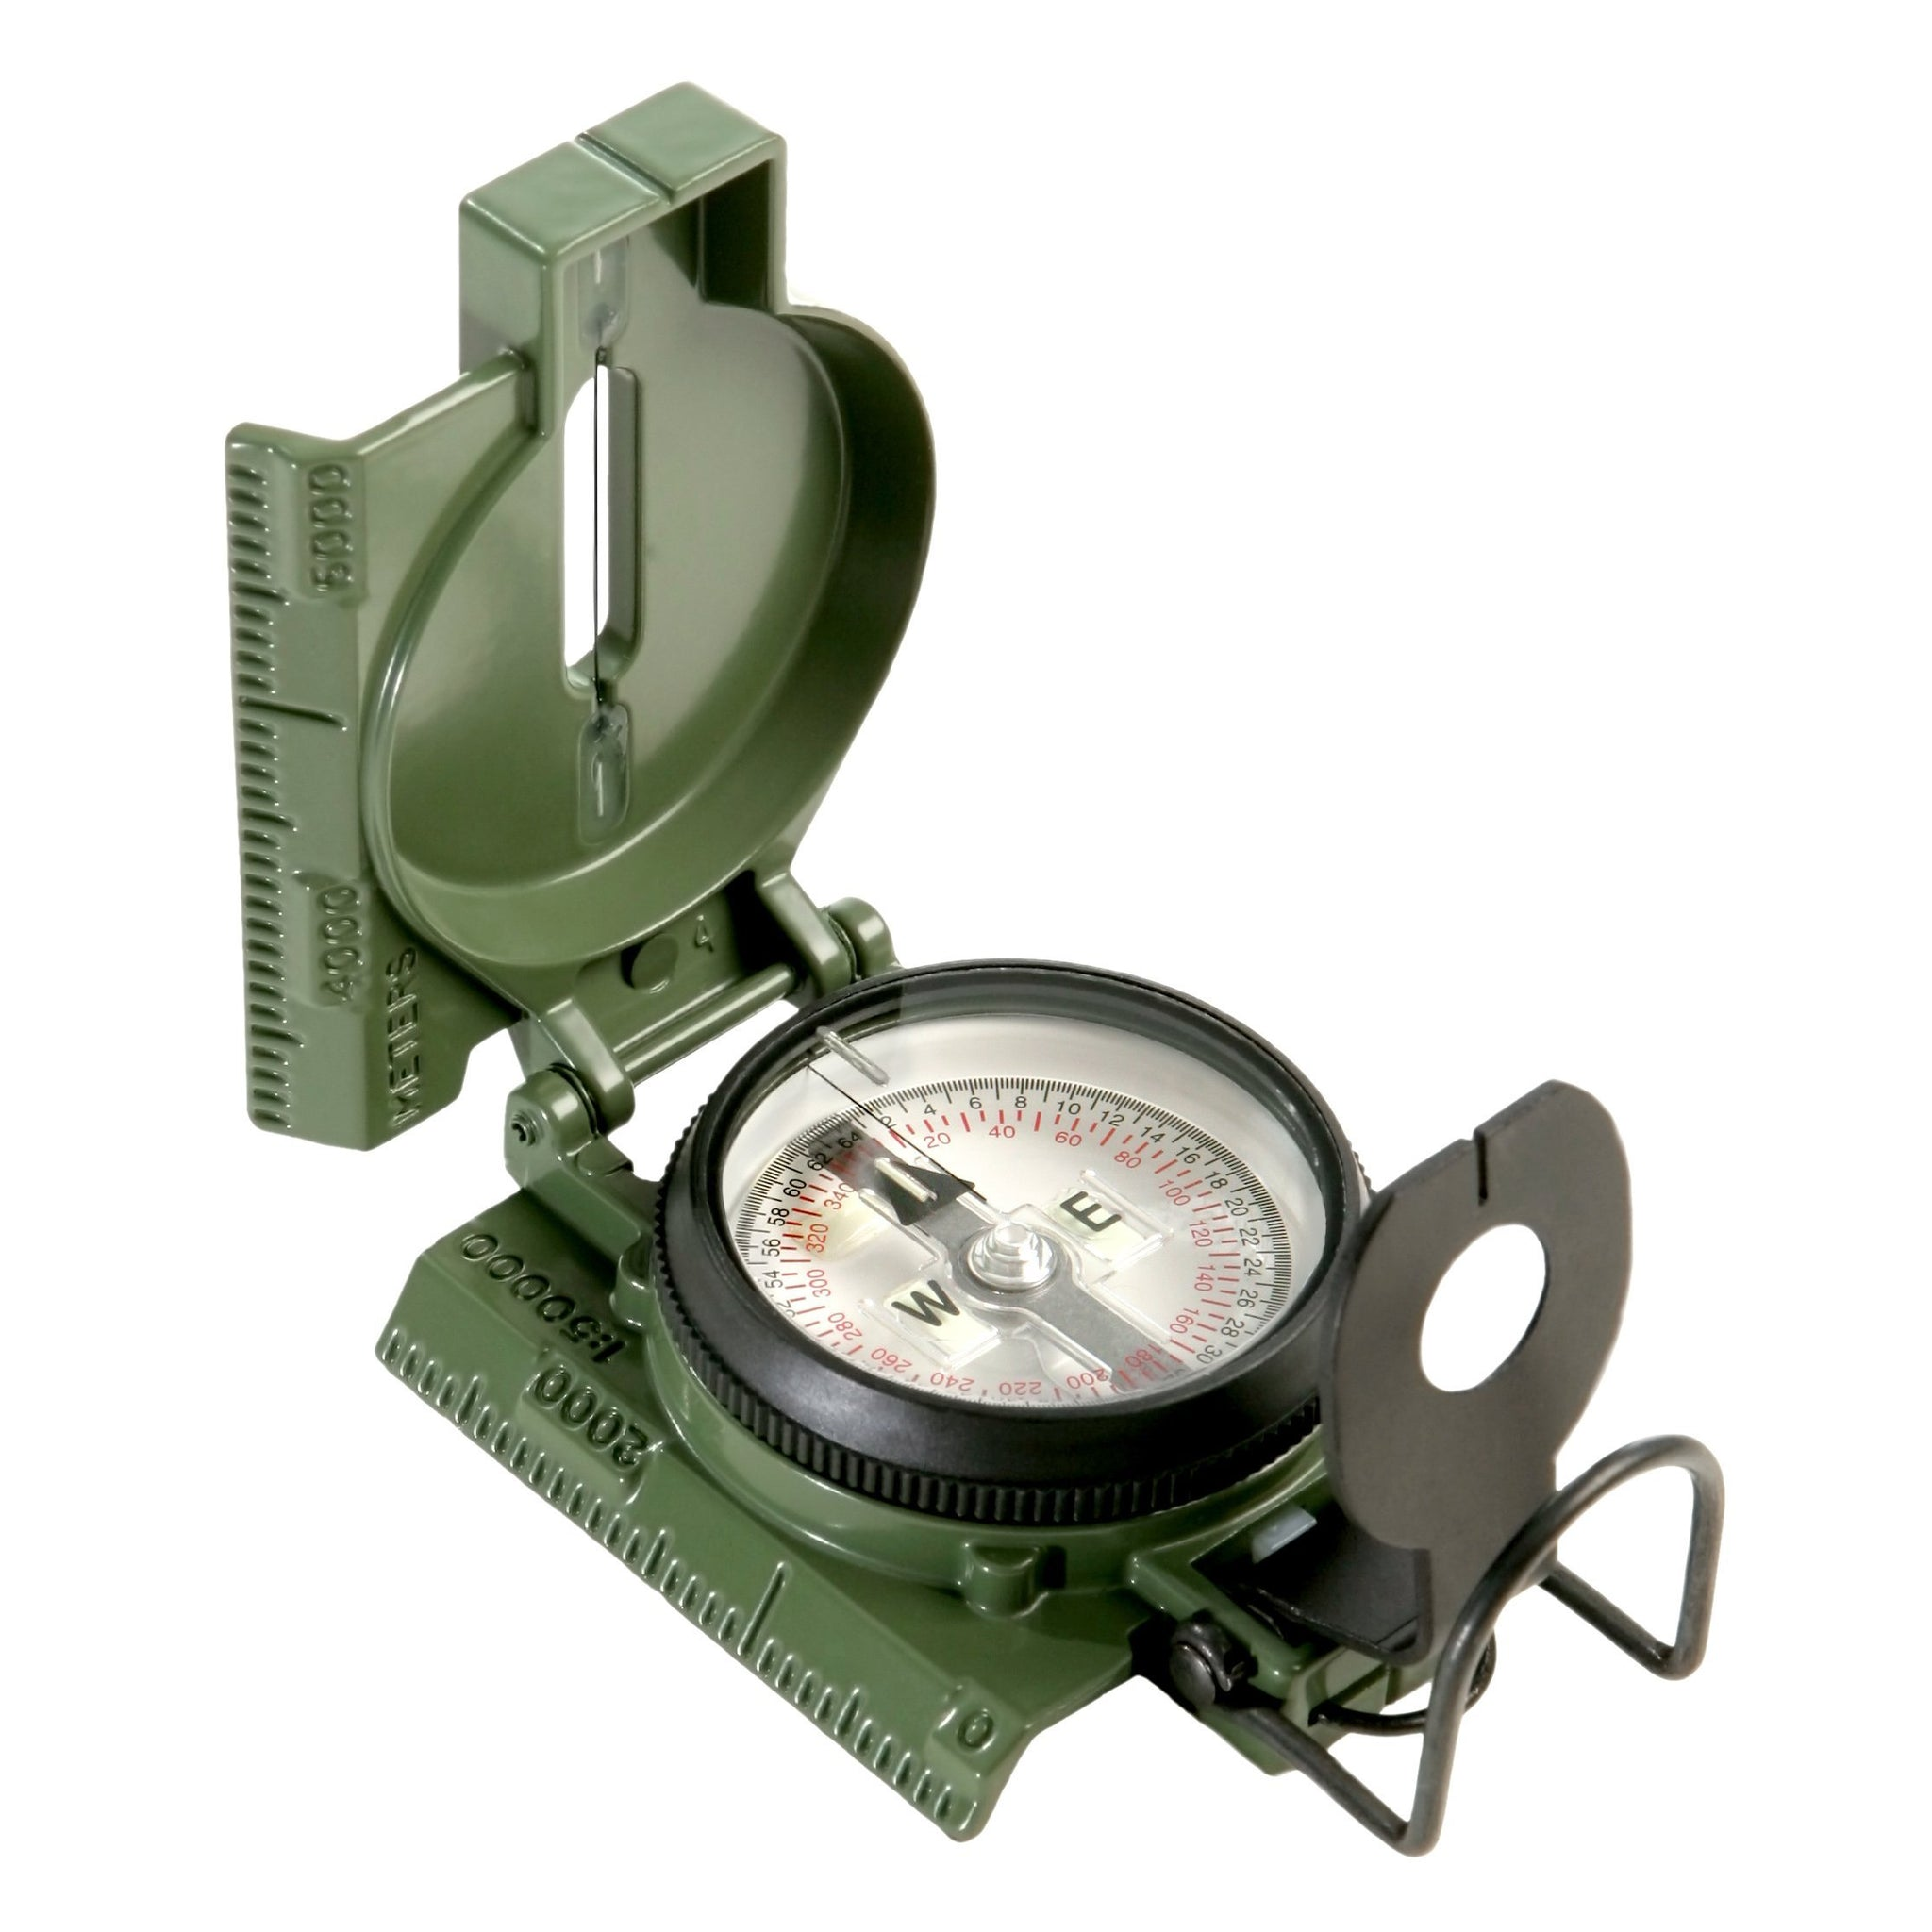 Instrumentation Cammenga Lensatic Compass Phosphorescent